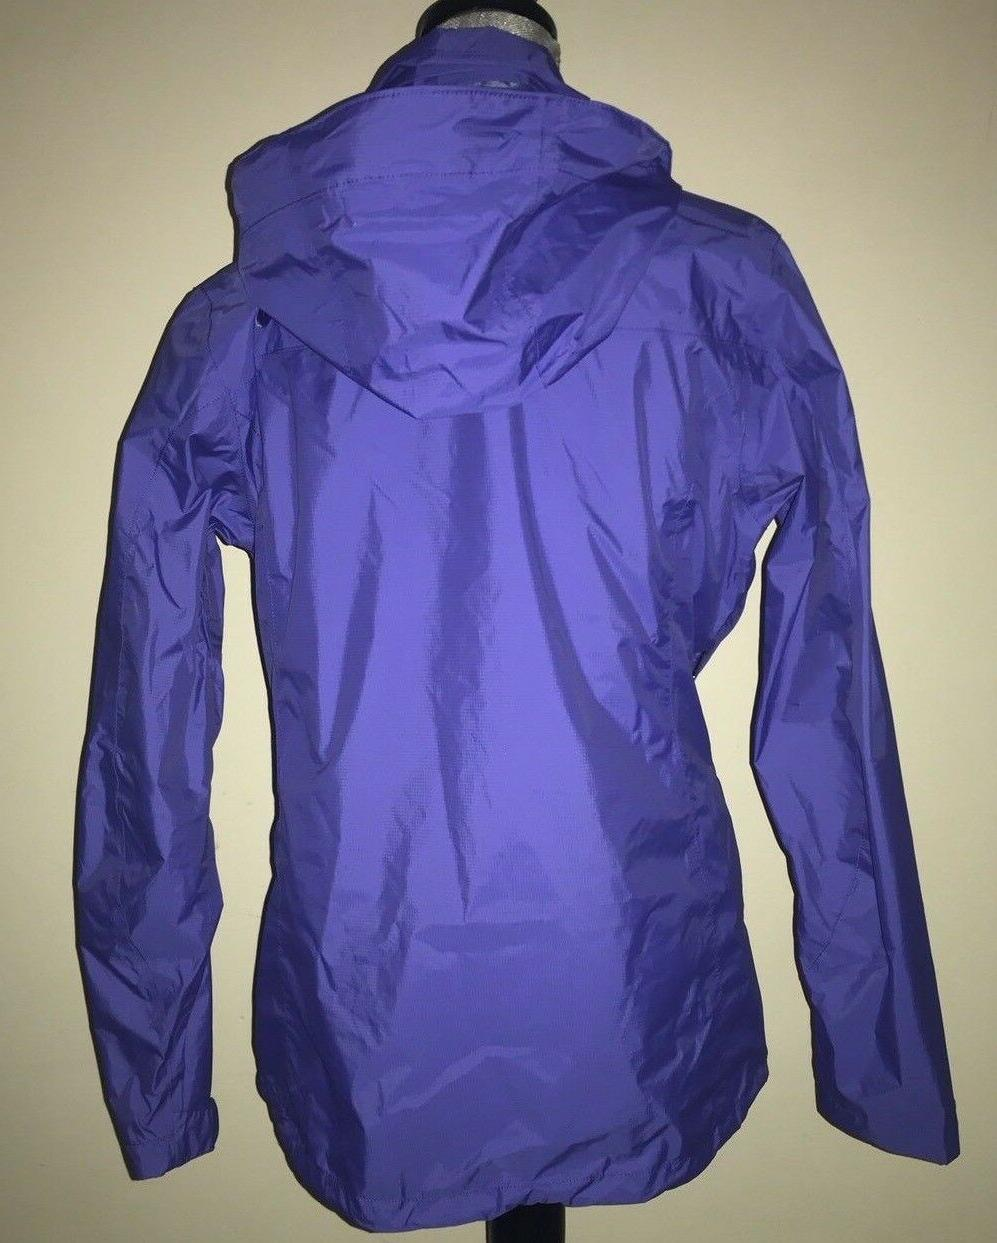 MARMOT Jacket Women's GEMSTONE size S or Windbreaker